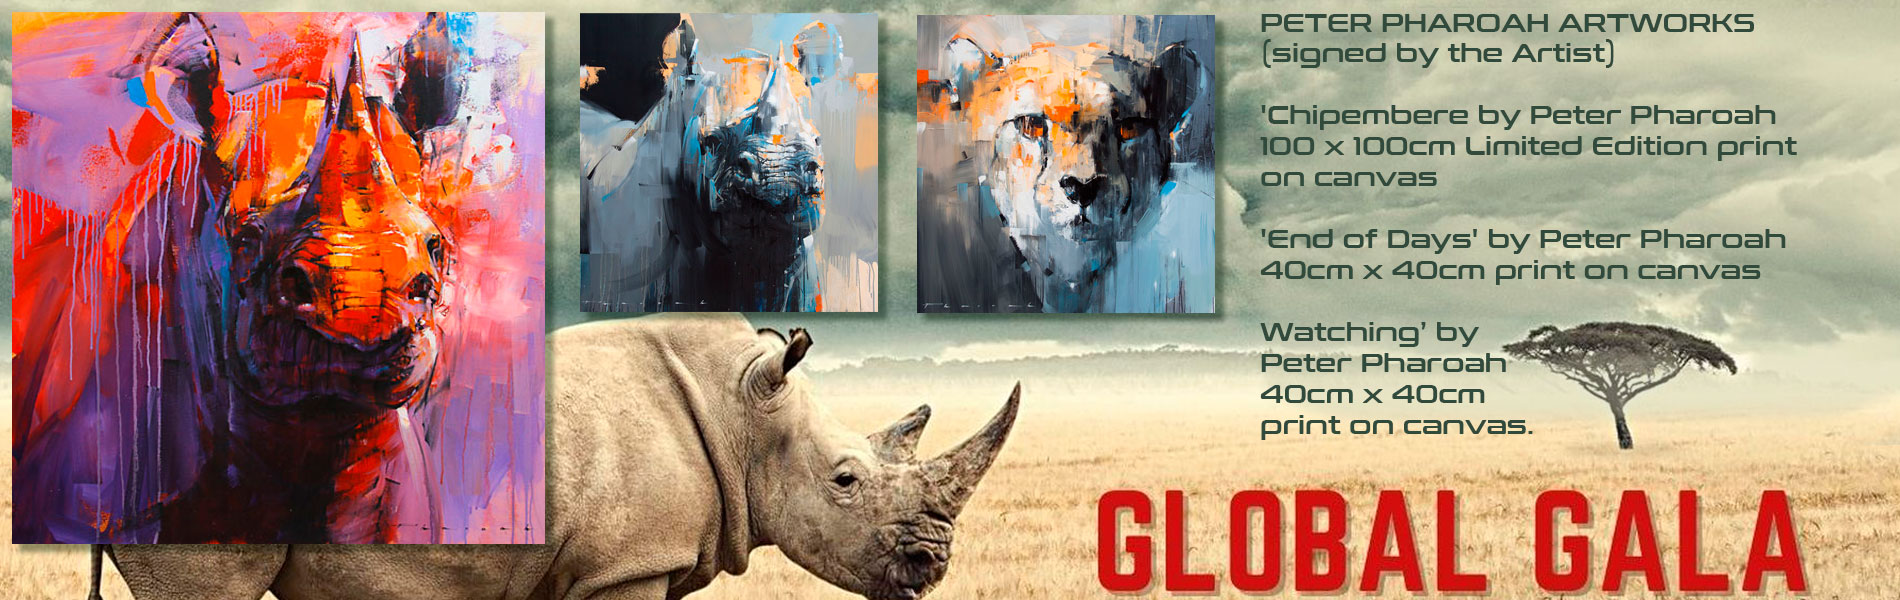 Place your bid and win a Peter Pharoah Fine Art print at the Helping Rhinos Global Gala